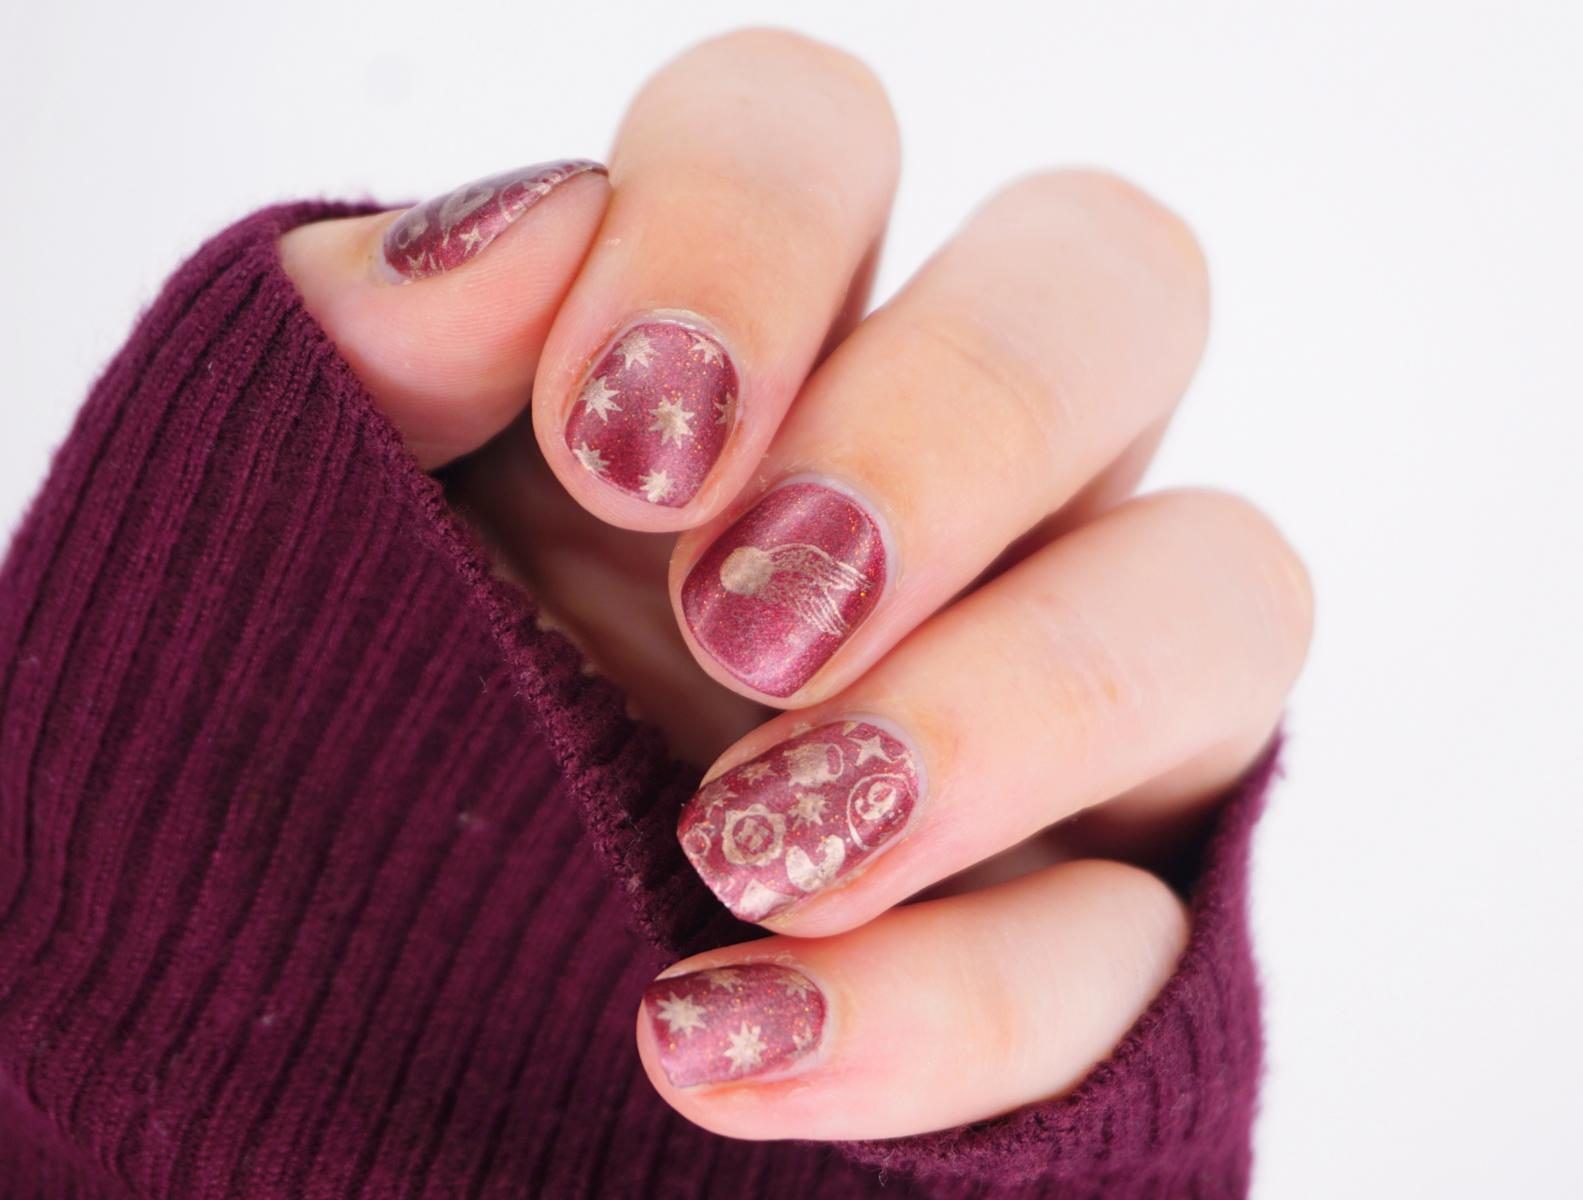 Montagspinselei Witchcraft Harry Potter Stamping Nailart